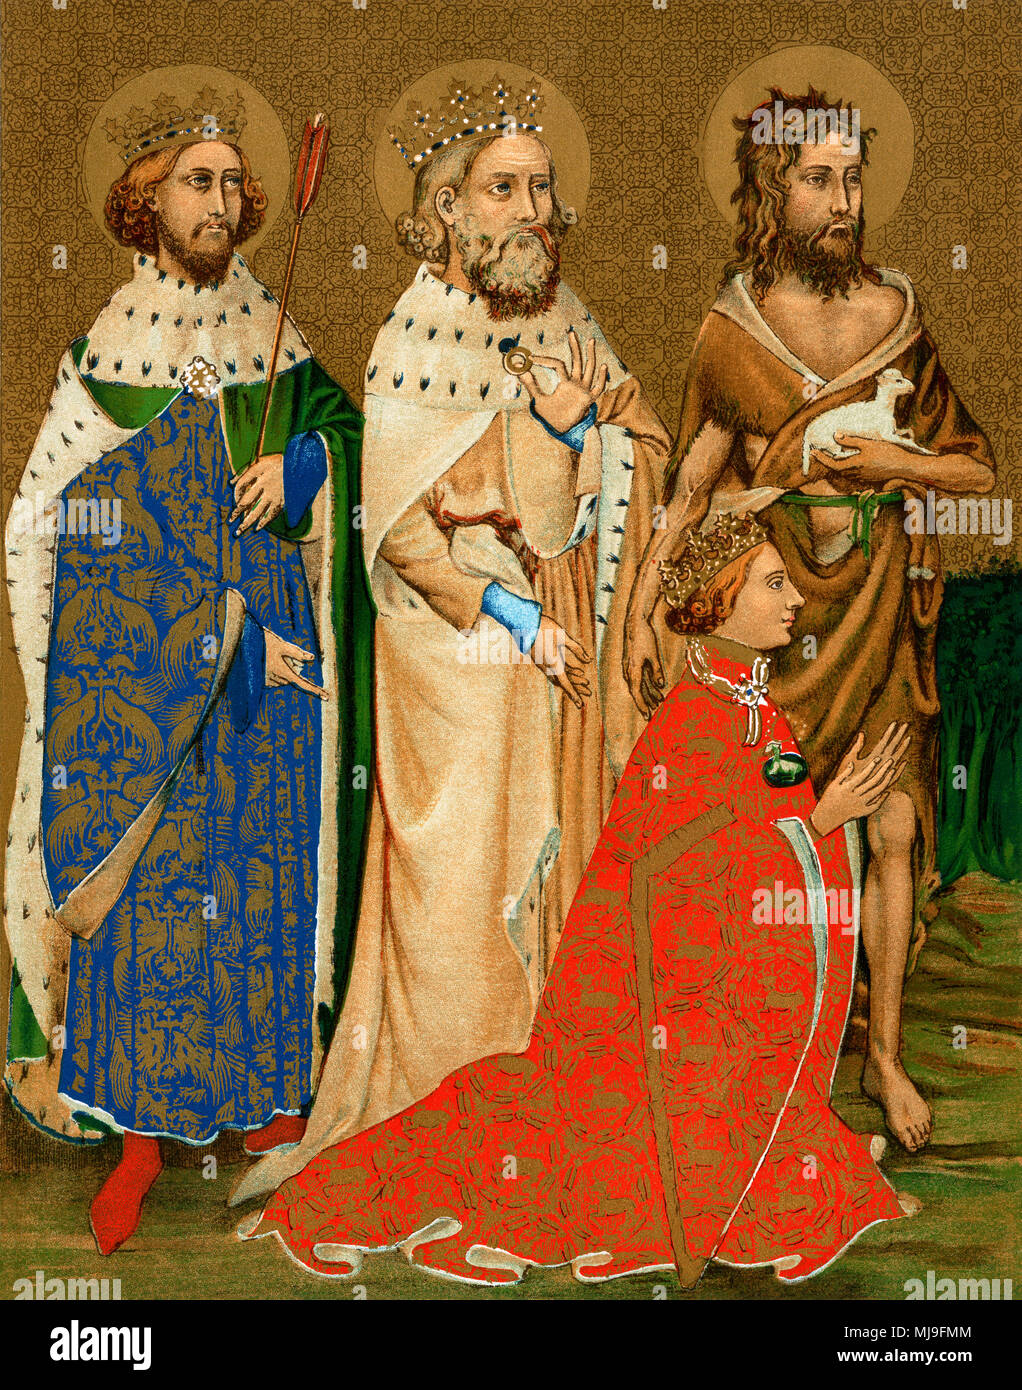 Richard II (kneeling) and his patron saints Edmund, Edward the Confessor, and John the Baptist.  Lithographic reproduction of diptych painting - Stock Image